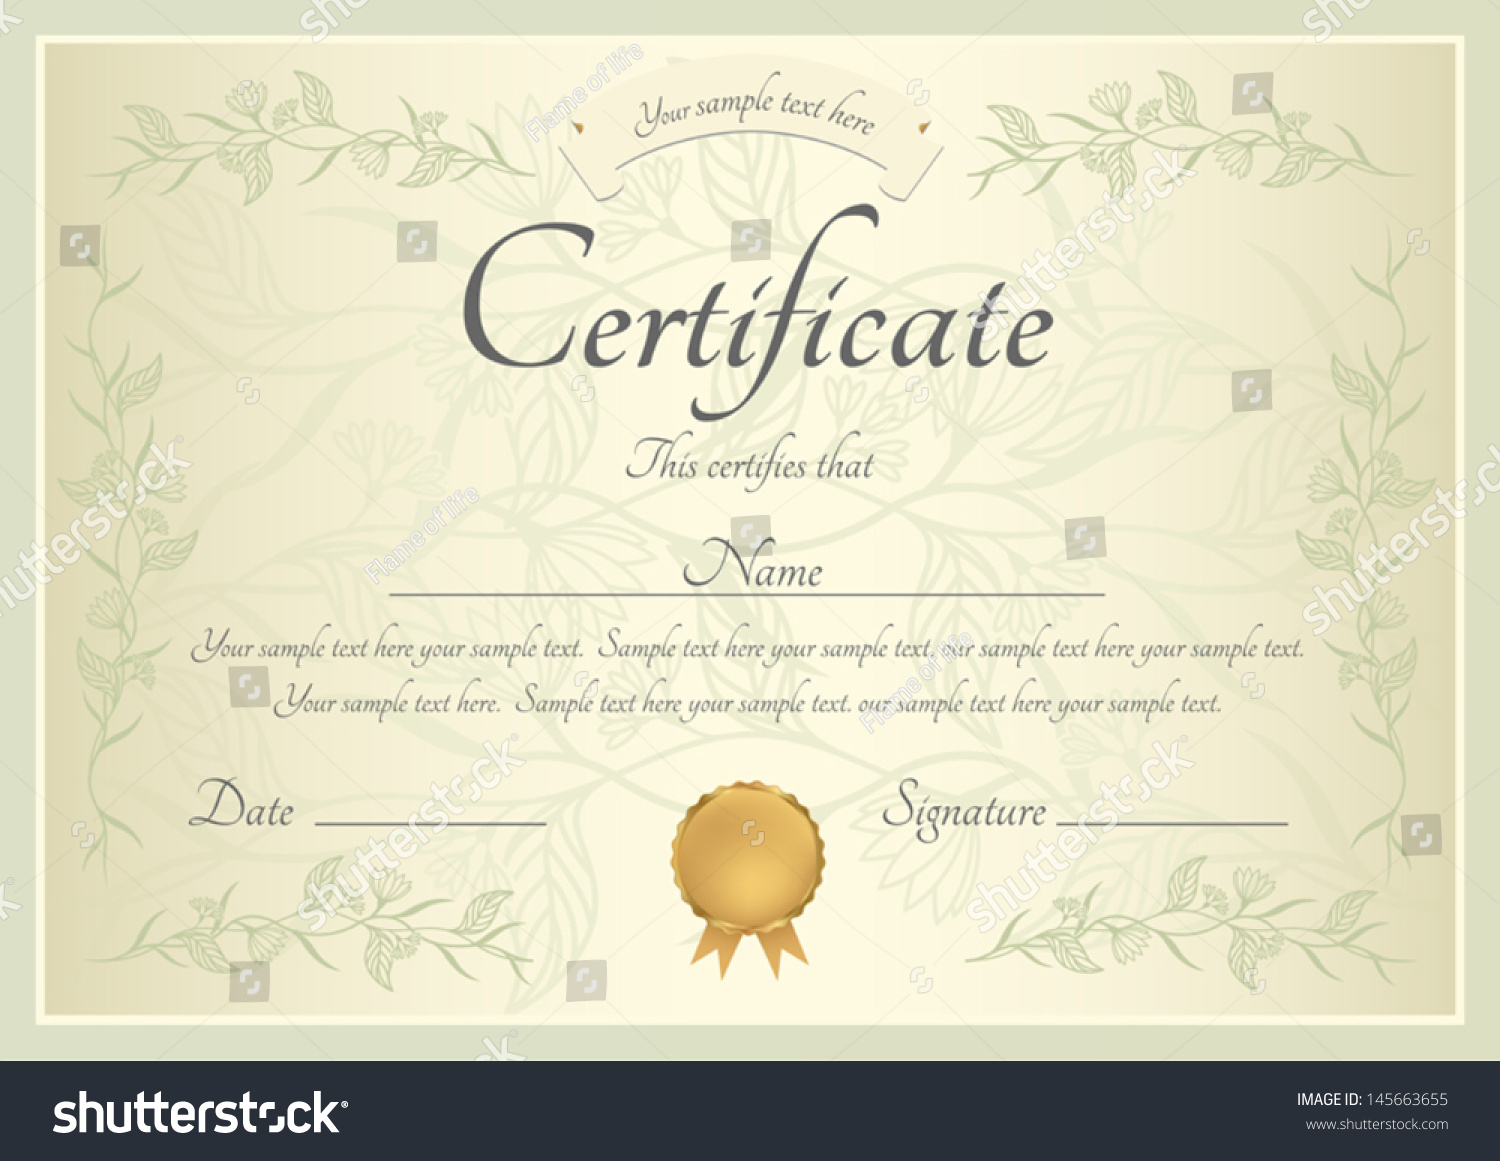 Certificate Completion Template Sample Background Floral – Template Certificate of Completion